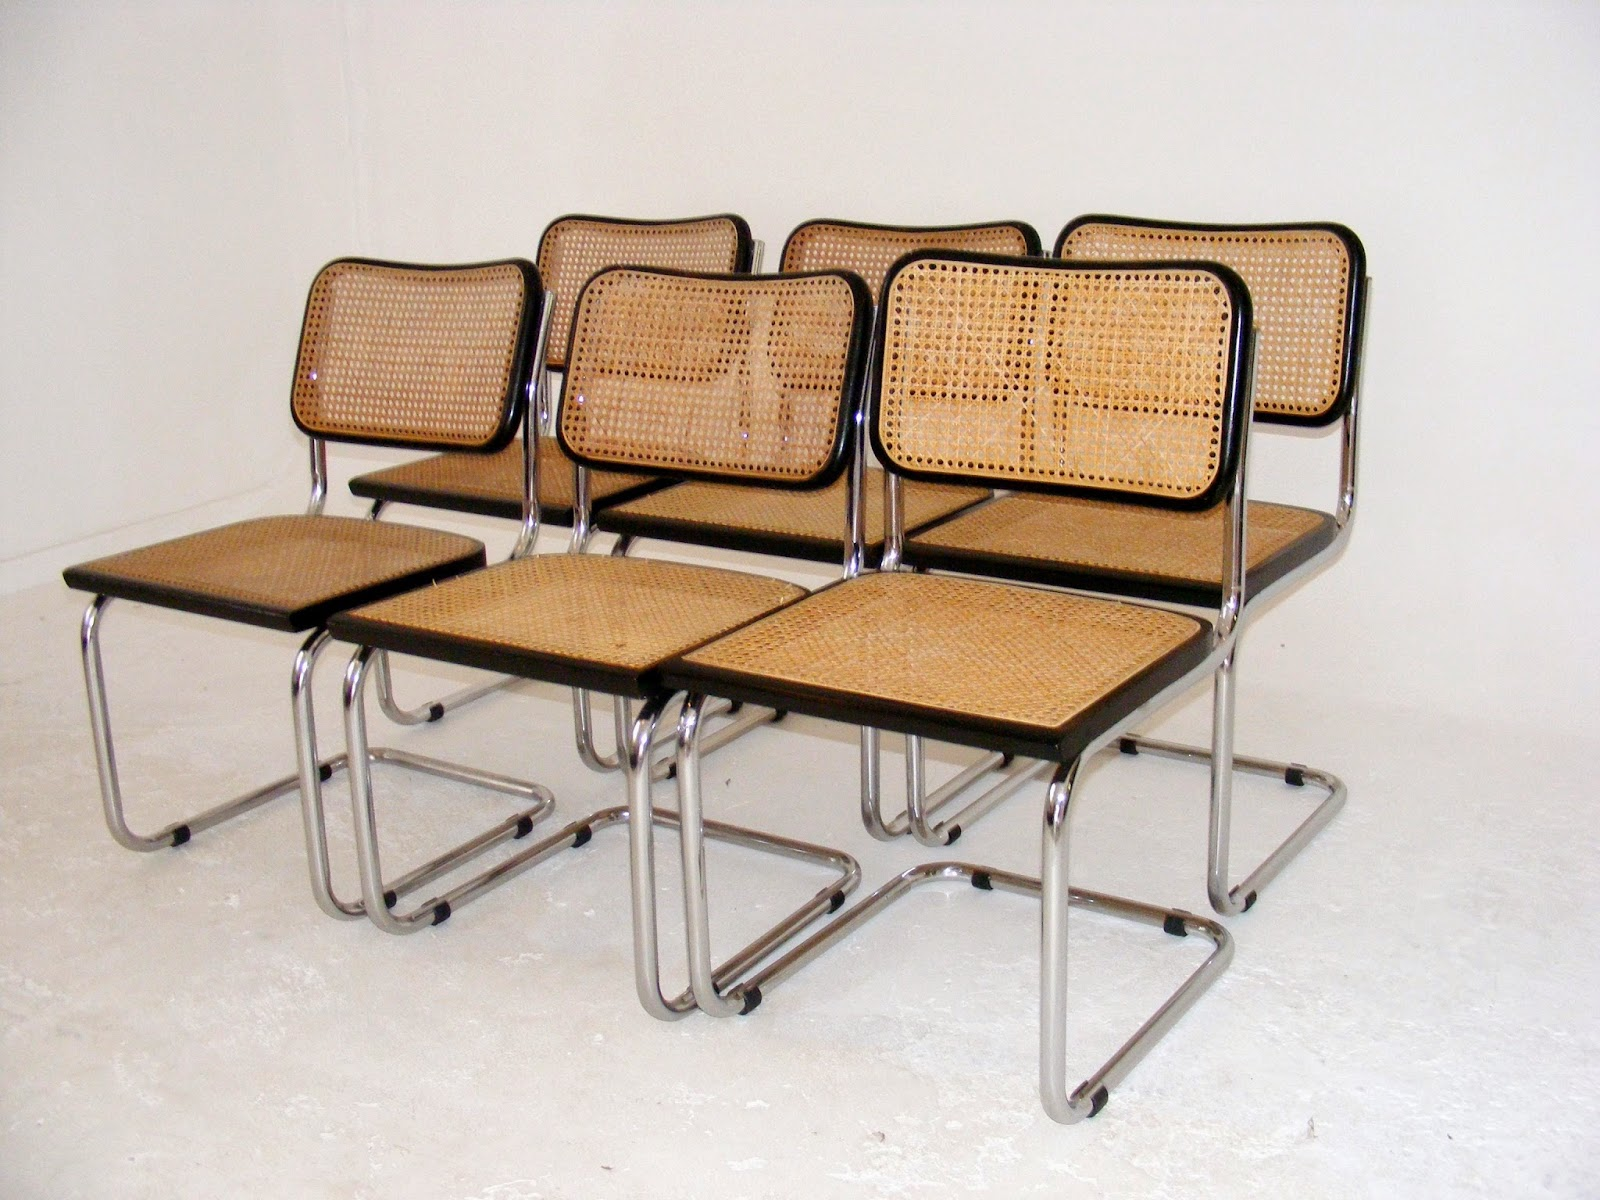 A set of 6 vintage replica 'Cesca' chairs made in Italy. The originals were  designed by Marcel Breuer in 1928.